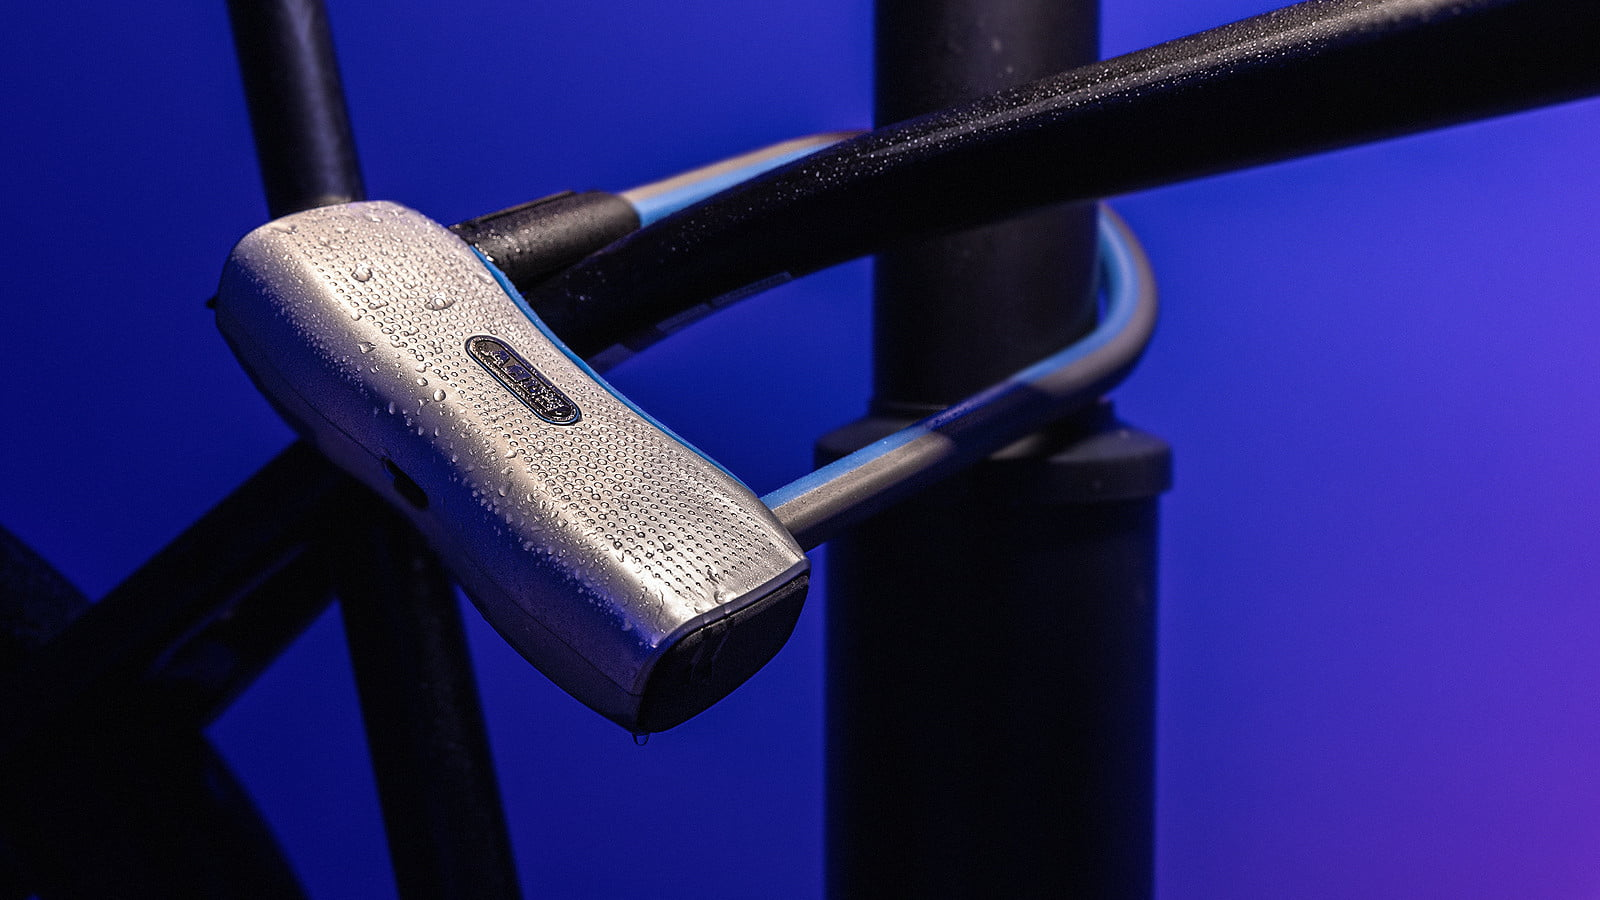 abus 770a smartx proximity aware intelligent u lock protects your ride wetteresistent big  1